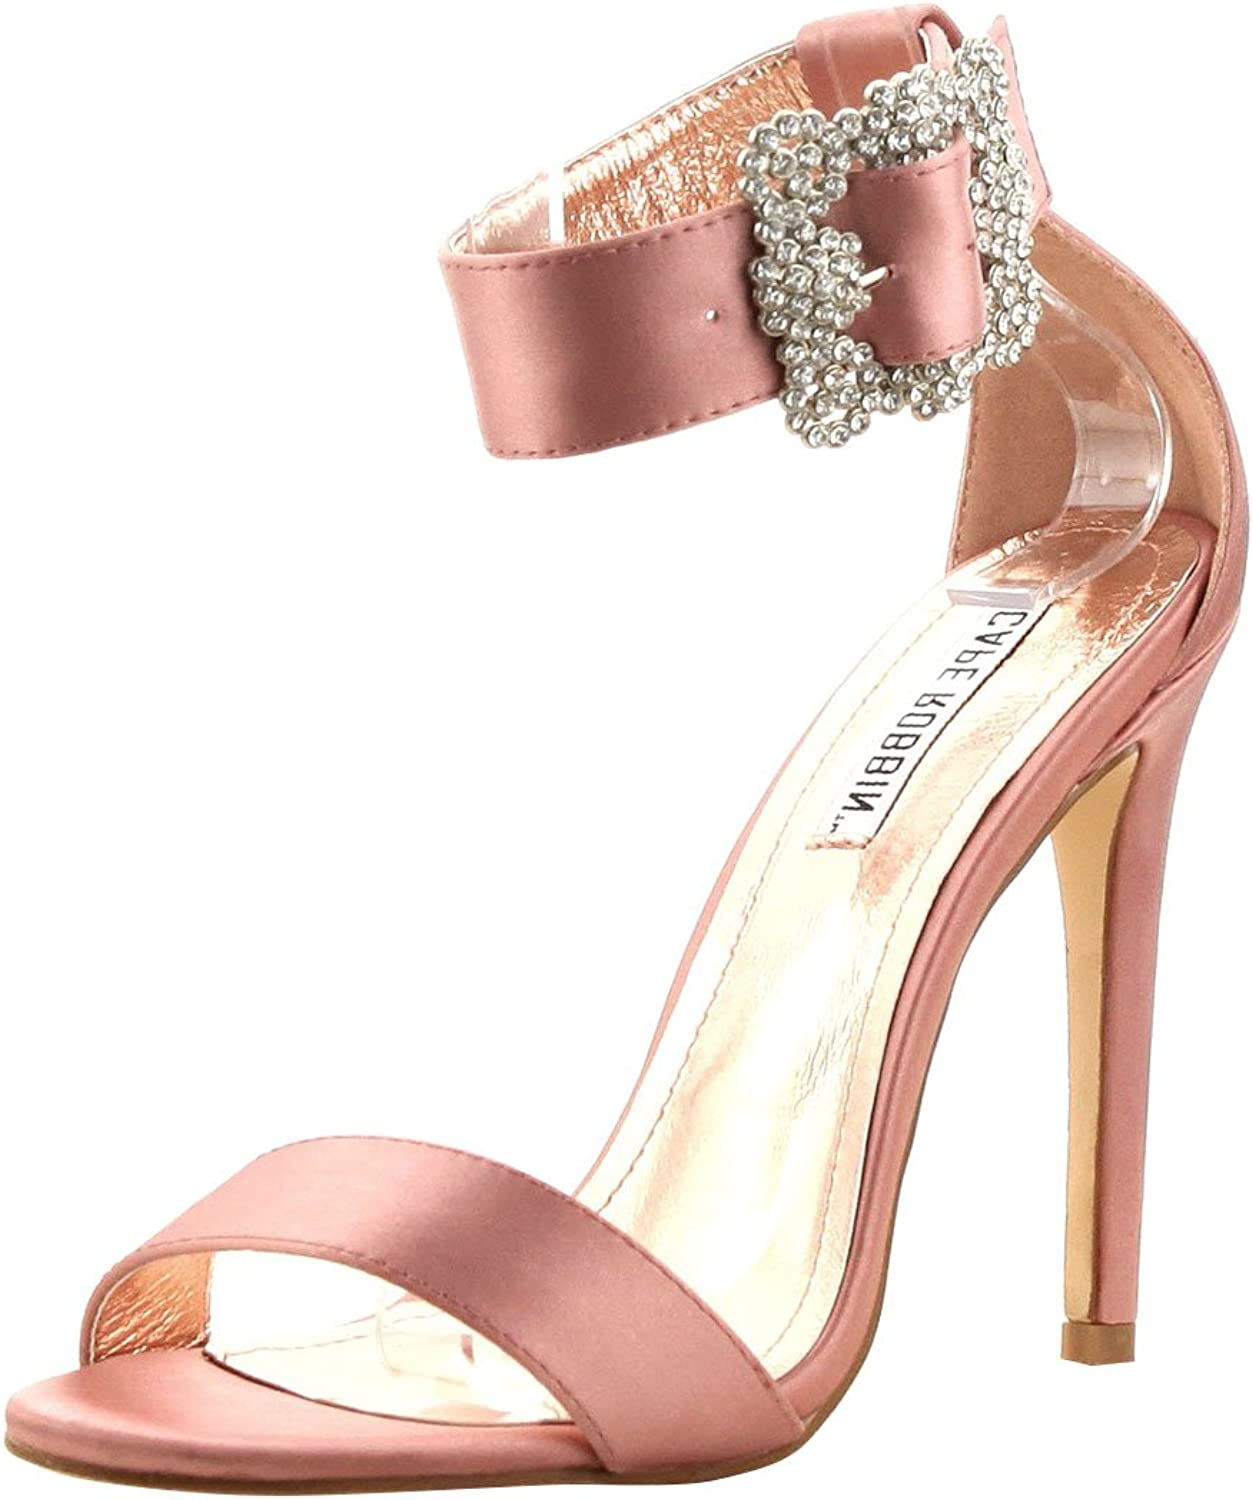 CAPE ROBBIN Womens Open Toe Jeweled Rhinestone Buckle Ankle Strap Party Dress Stiletto High Heel Sandals shoes